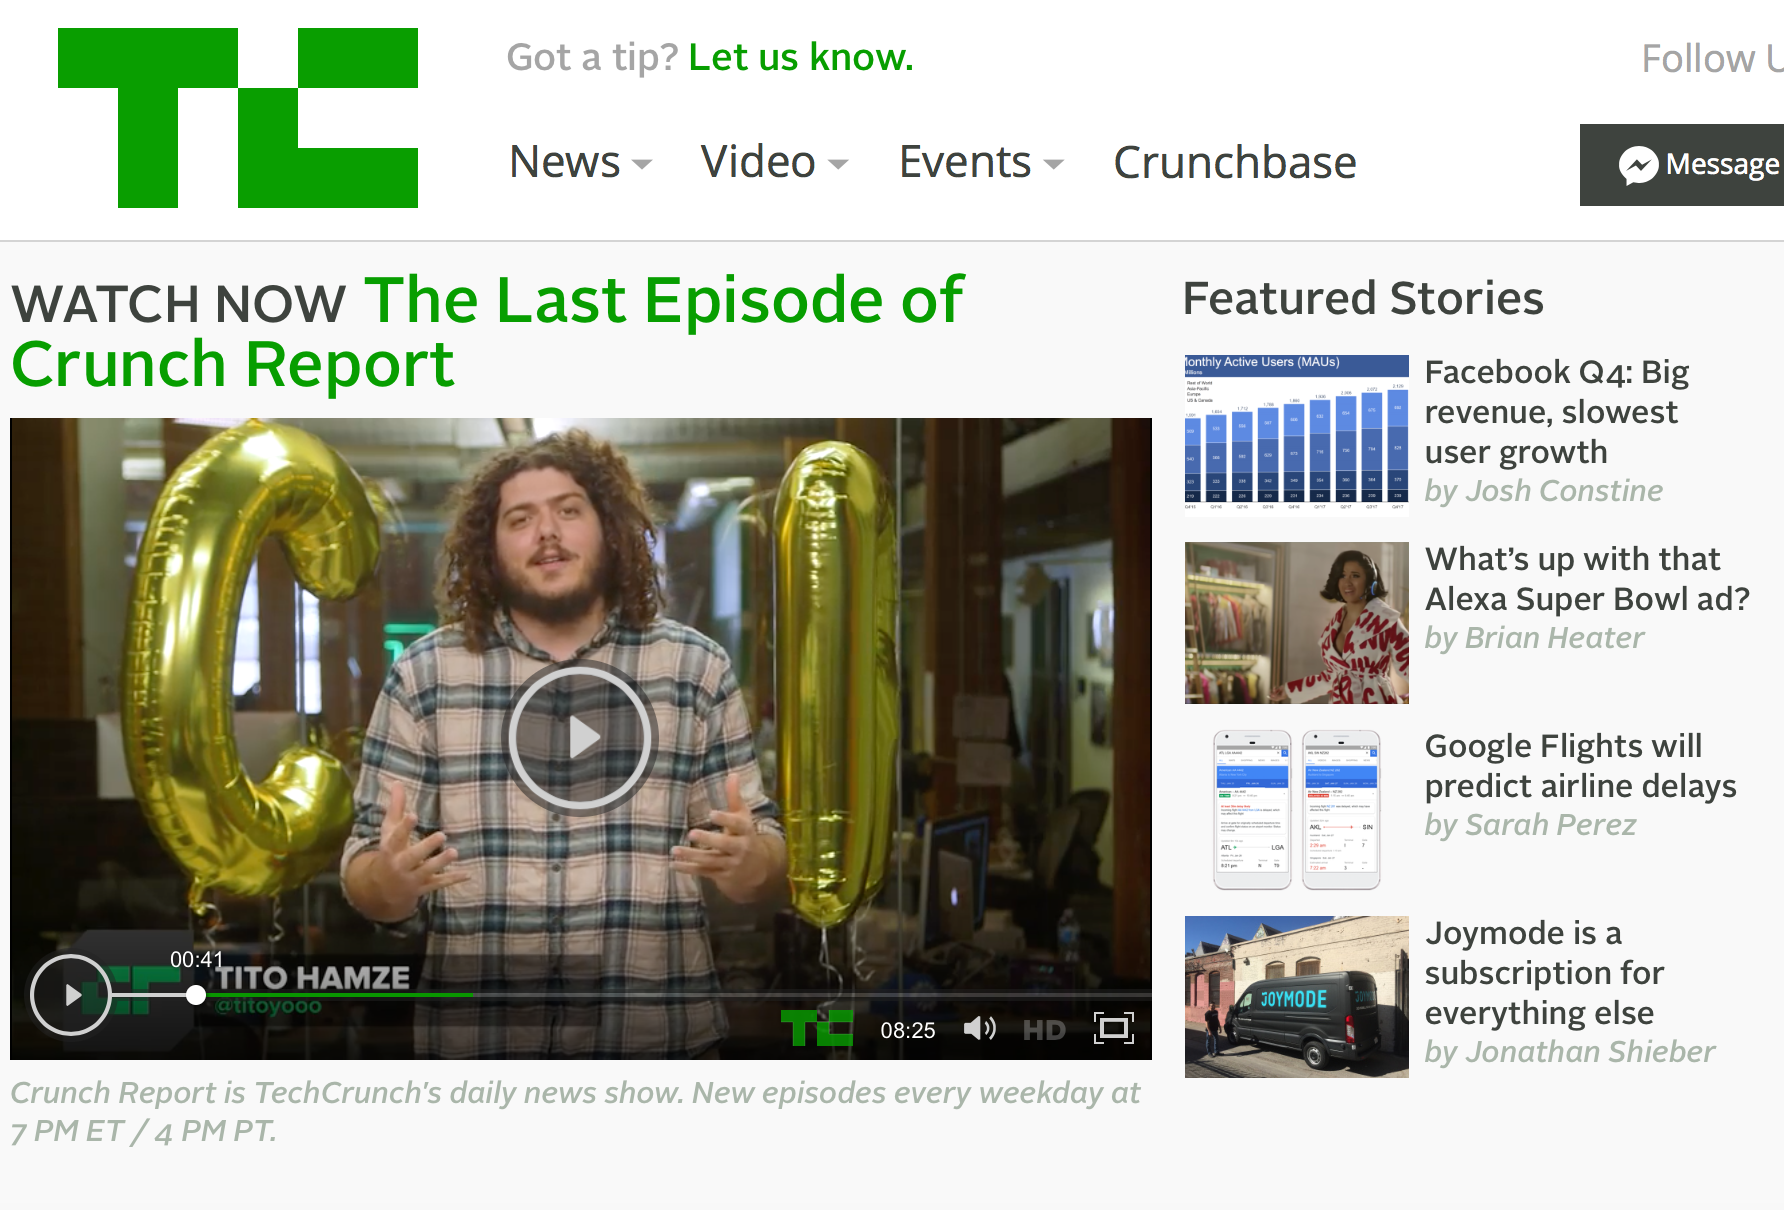 Tech Crunch,Crunch Report, Video, Online, NY Times